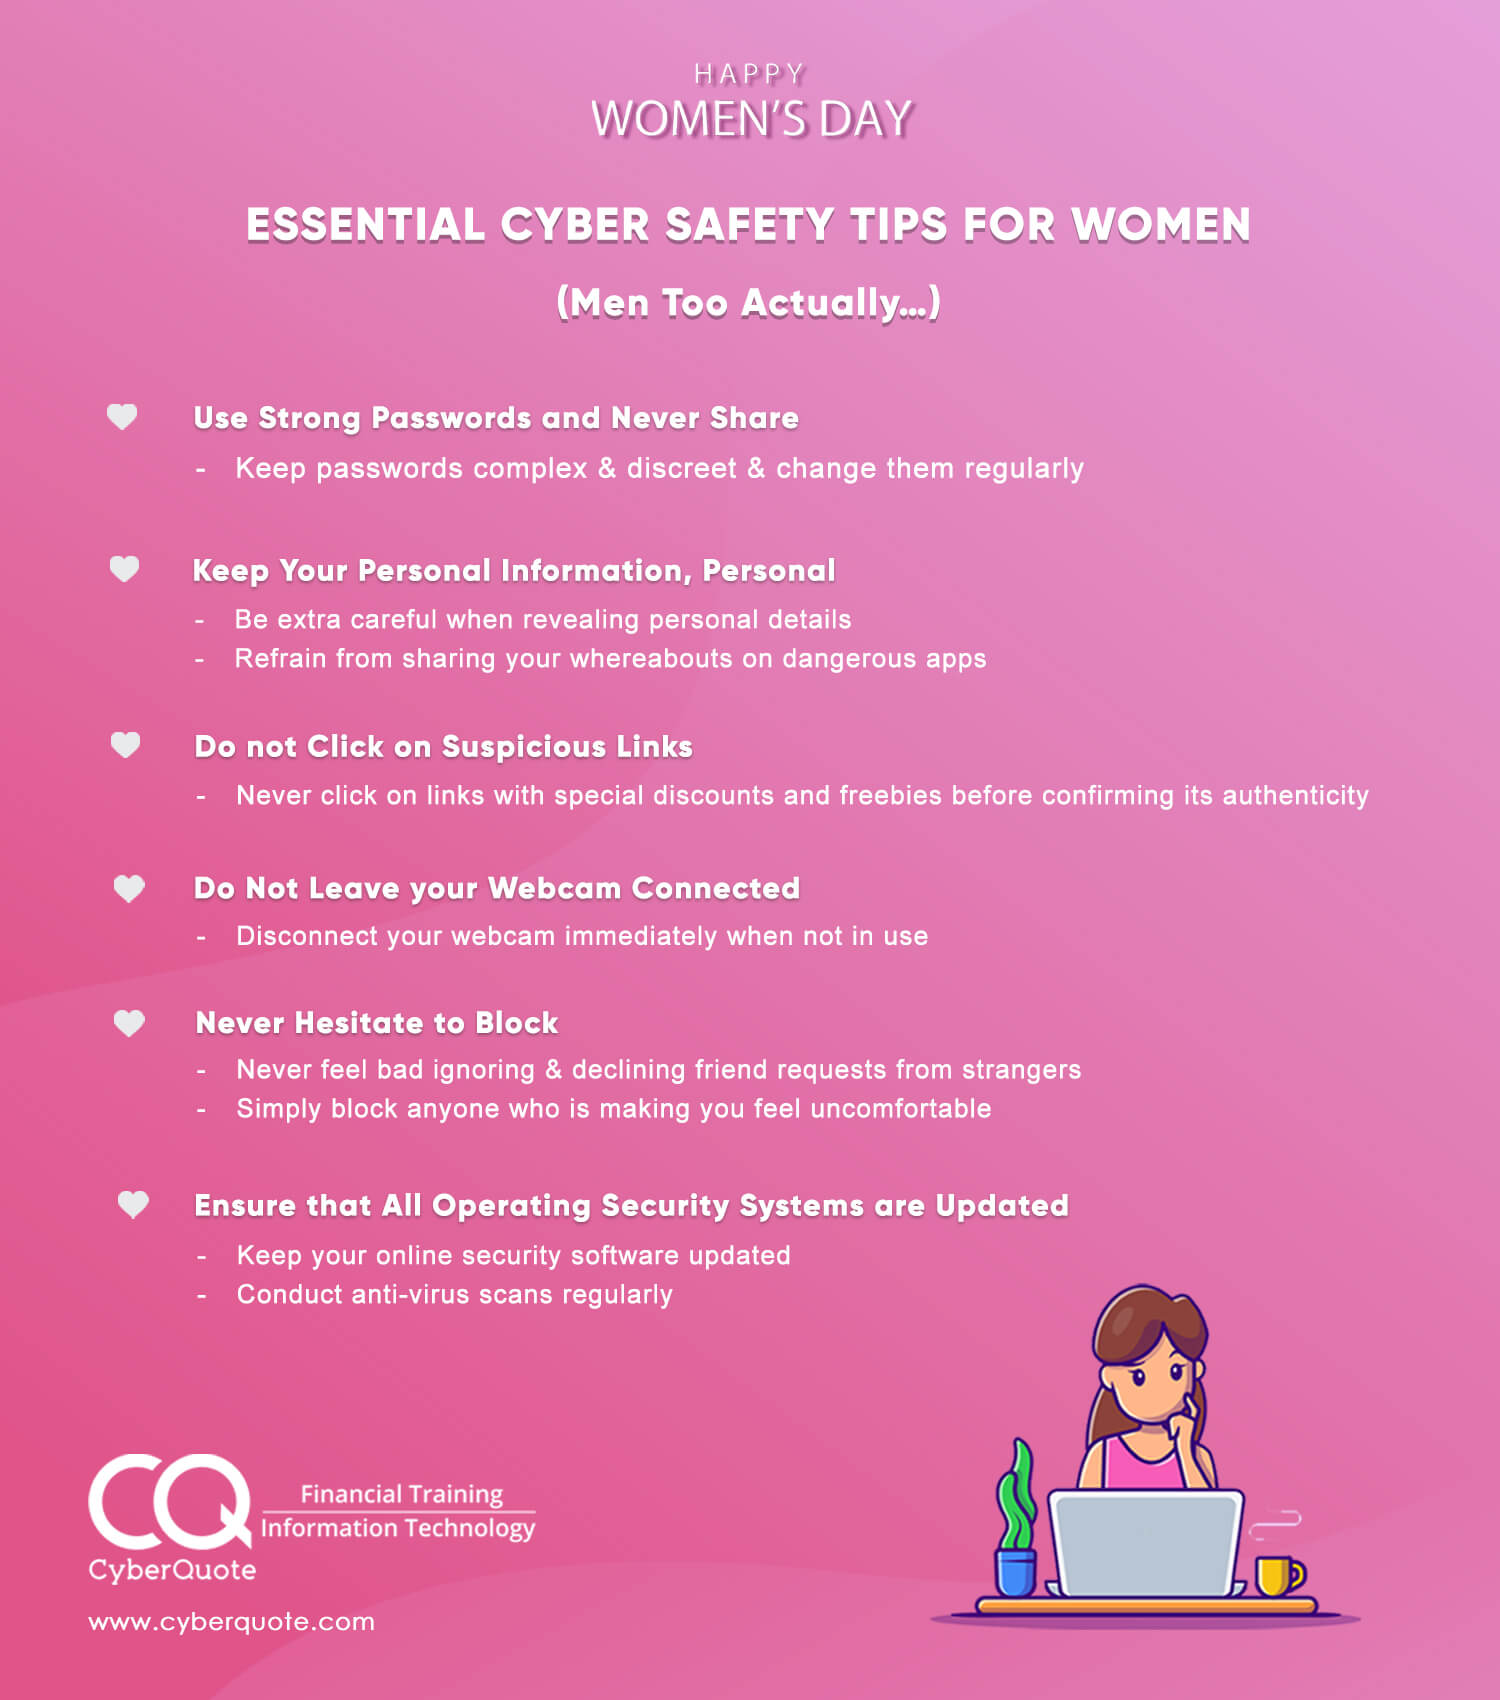 Essential Cyber Safety Tips for Women